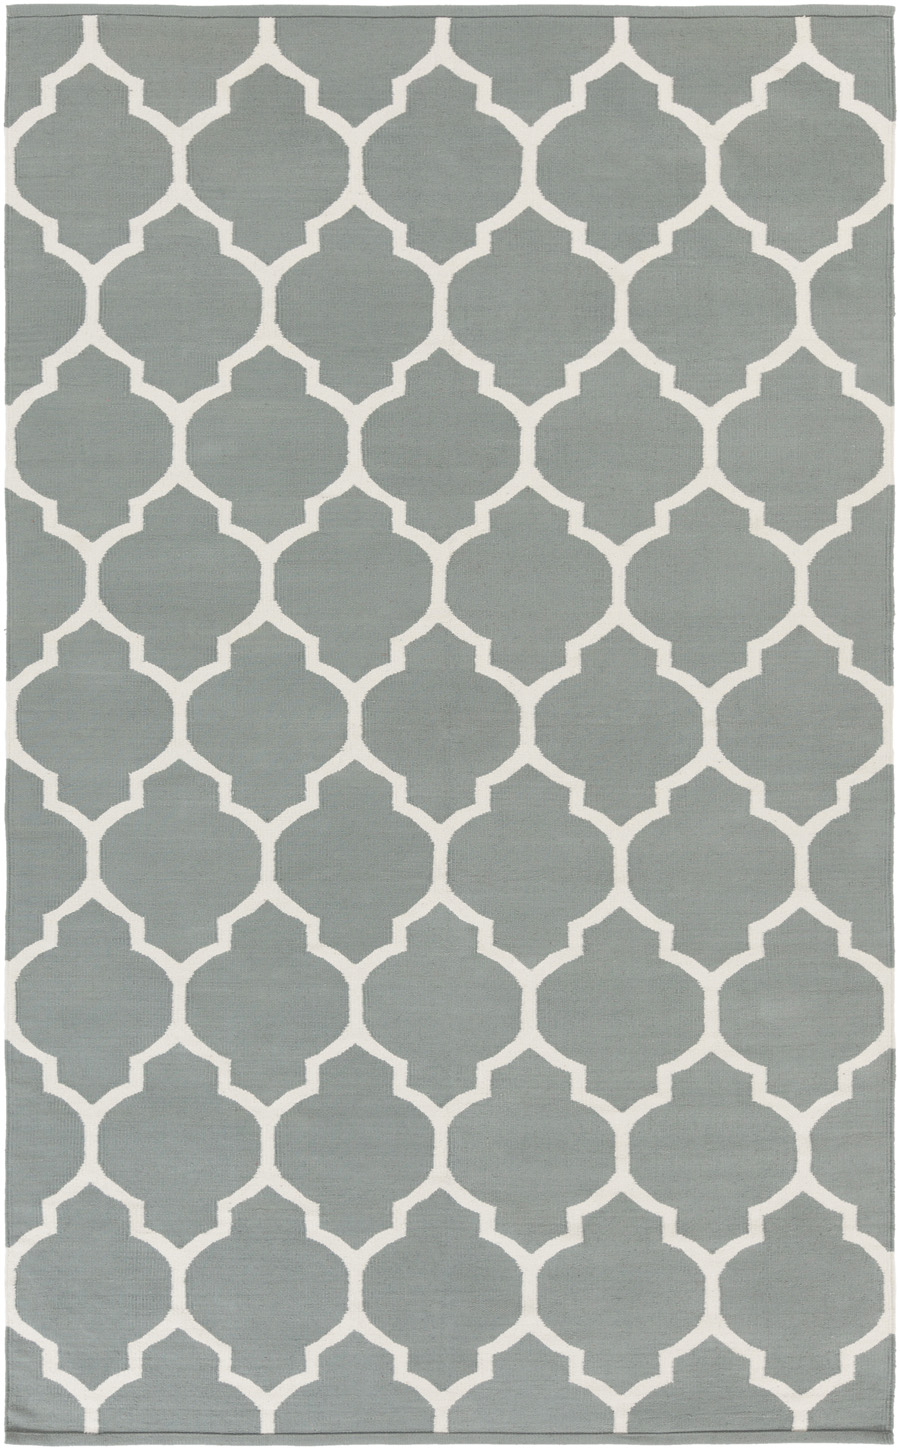 Artistic Weavers Vogue Claire AWLT3012 Grey/White Area Rug